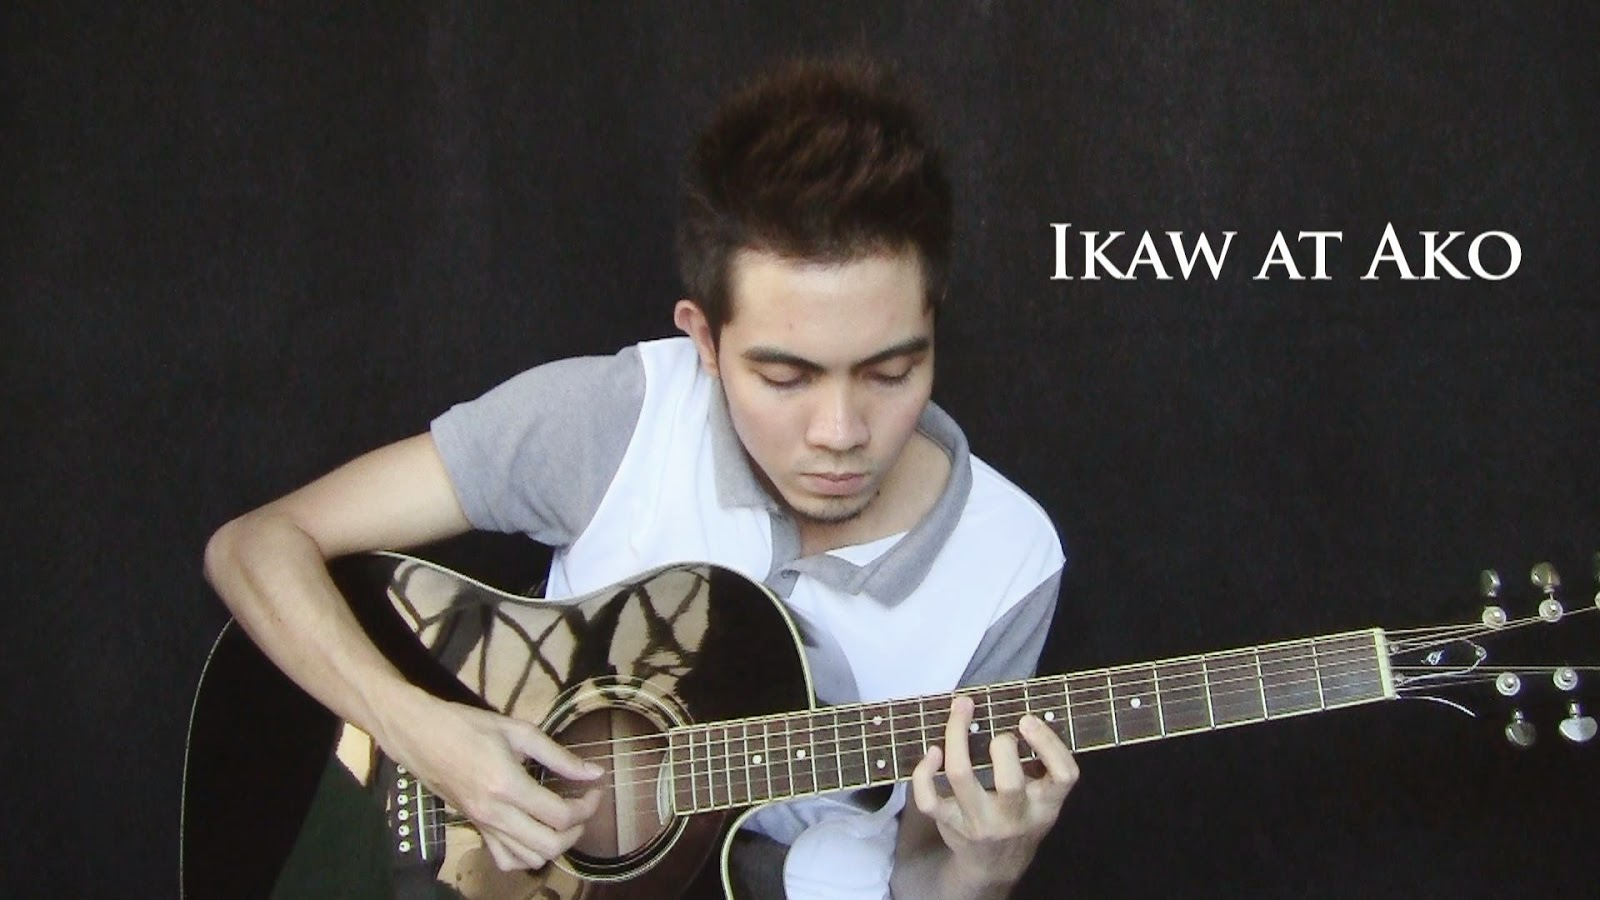 Nothing But The Strings: Ikaw At Ako - TJ Monterde (fingerstyle guitar cover)